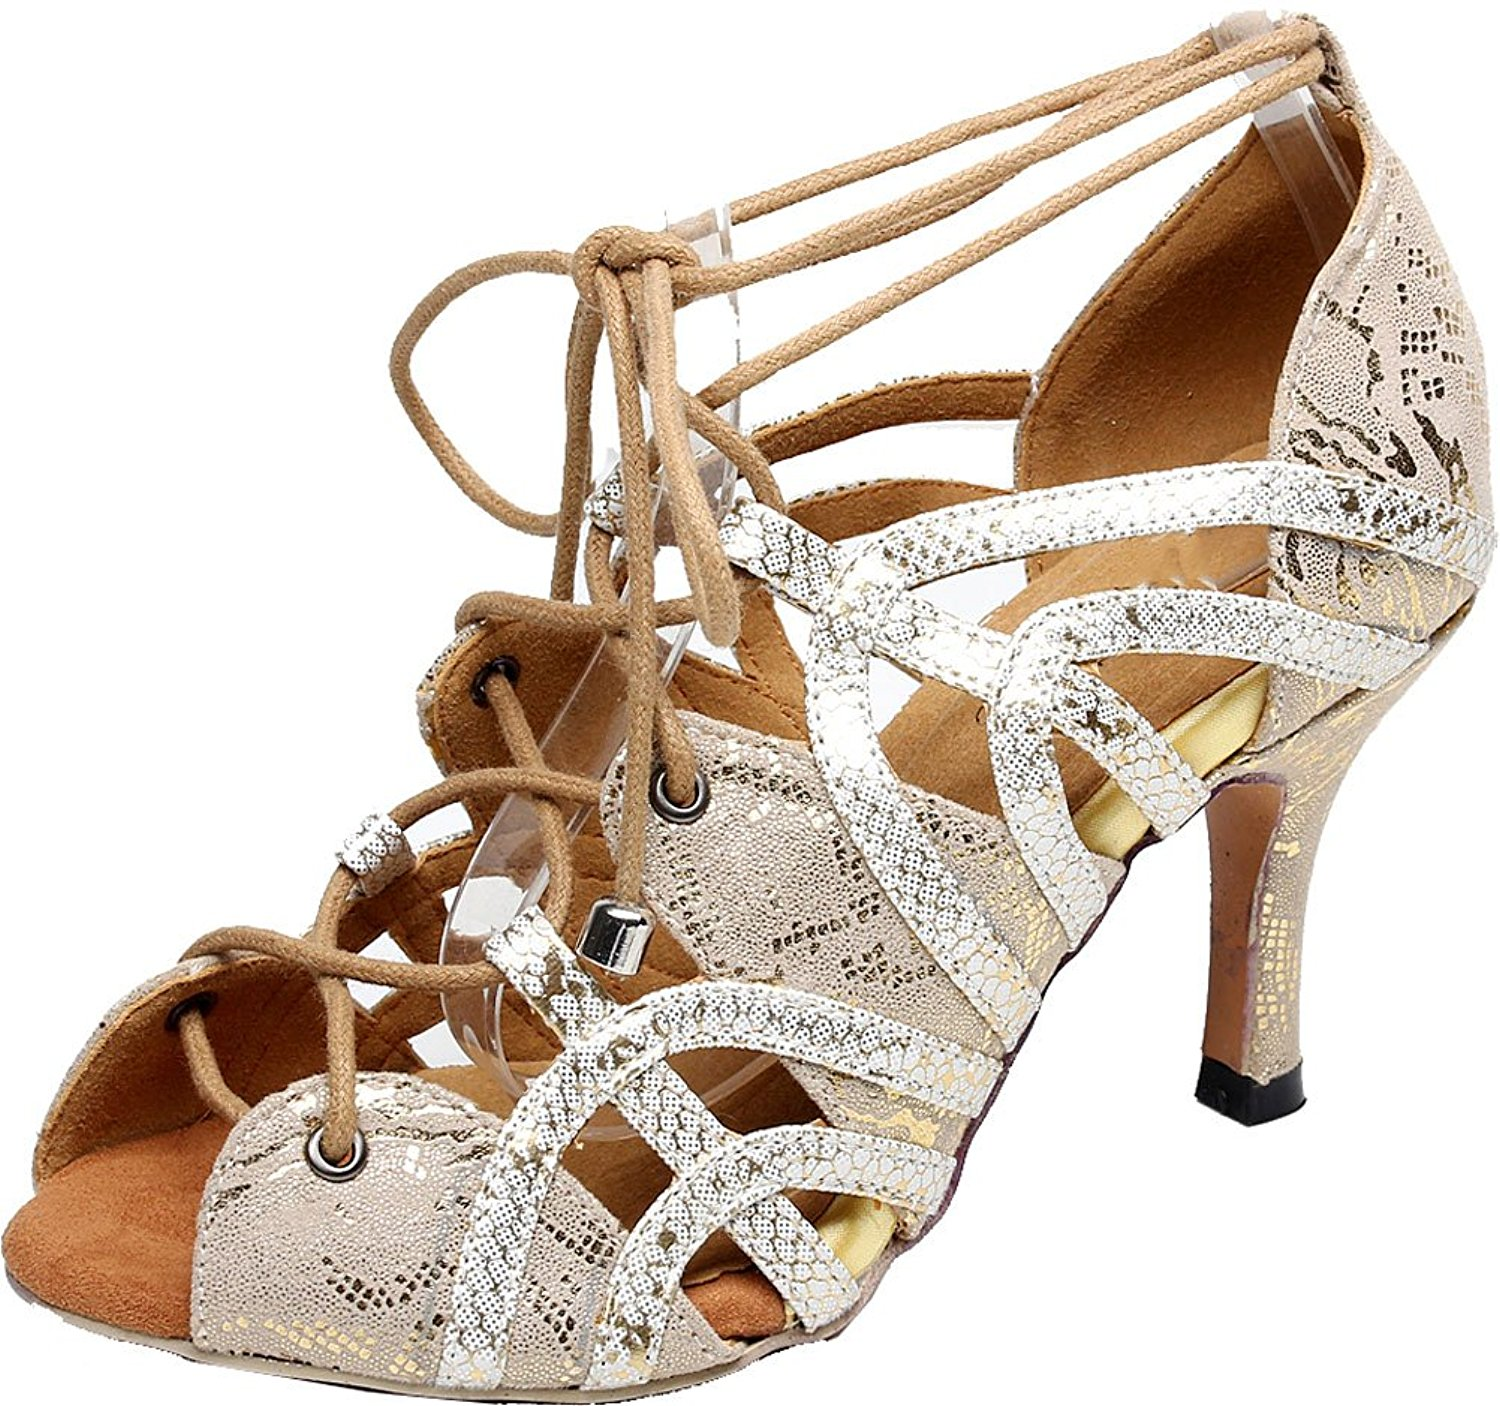 Salabobo Ladies 5017 Sexy Peep Toe Lace Up Dance Shoes Latin Tango Cha-Cha Swing Ballroom Party Wedding Sole 3IN Mid Heel PU Shoes Silver US 6.5 Outdoor